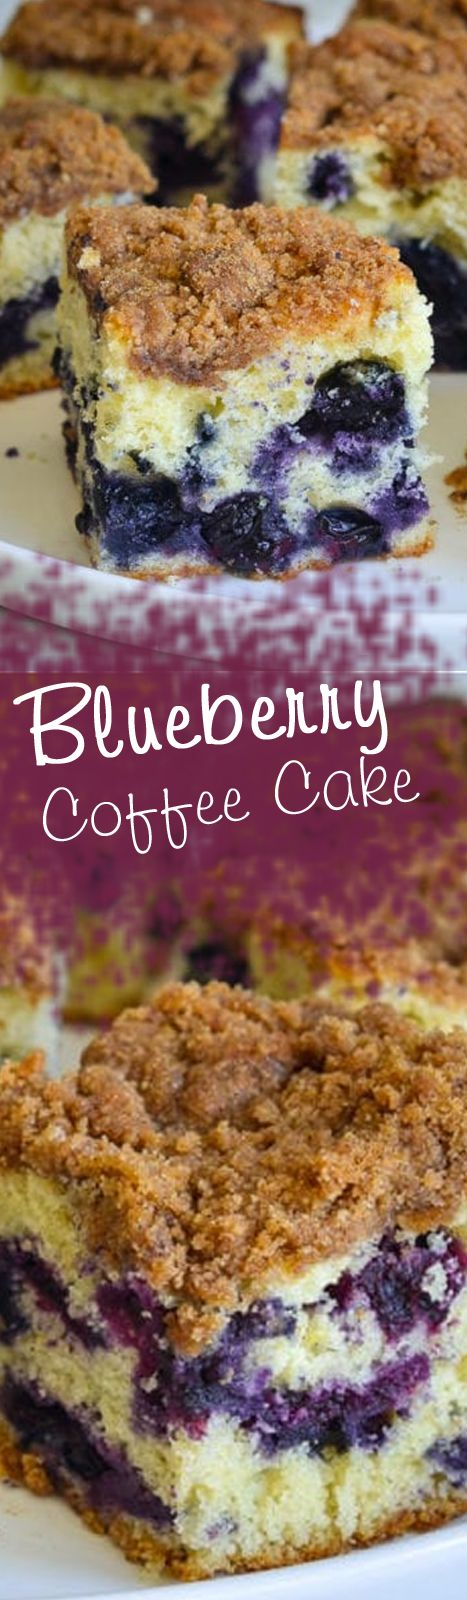 Blueberry Coffee Cake #recipes #coffee #cake #blueberry #coffeecakes #eating #food